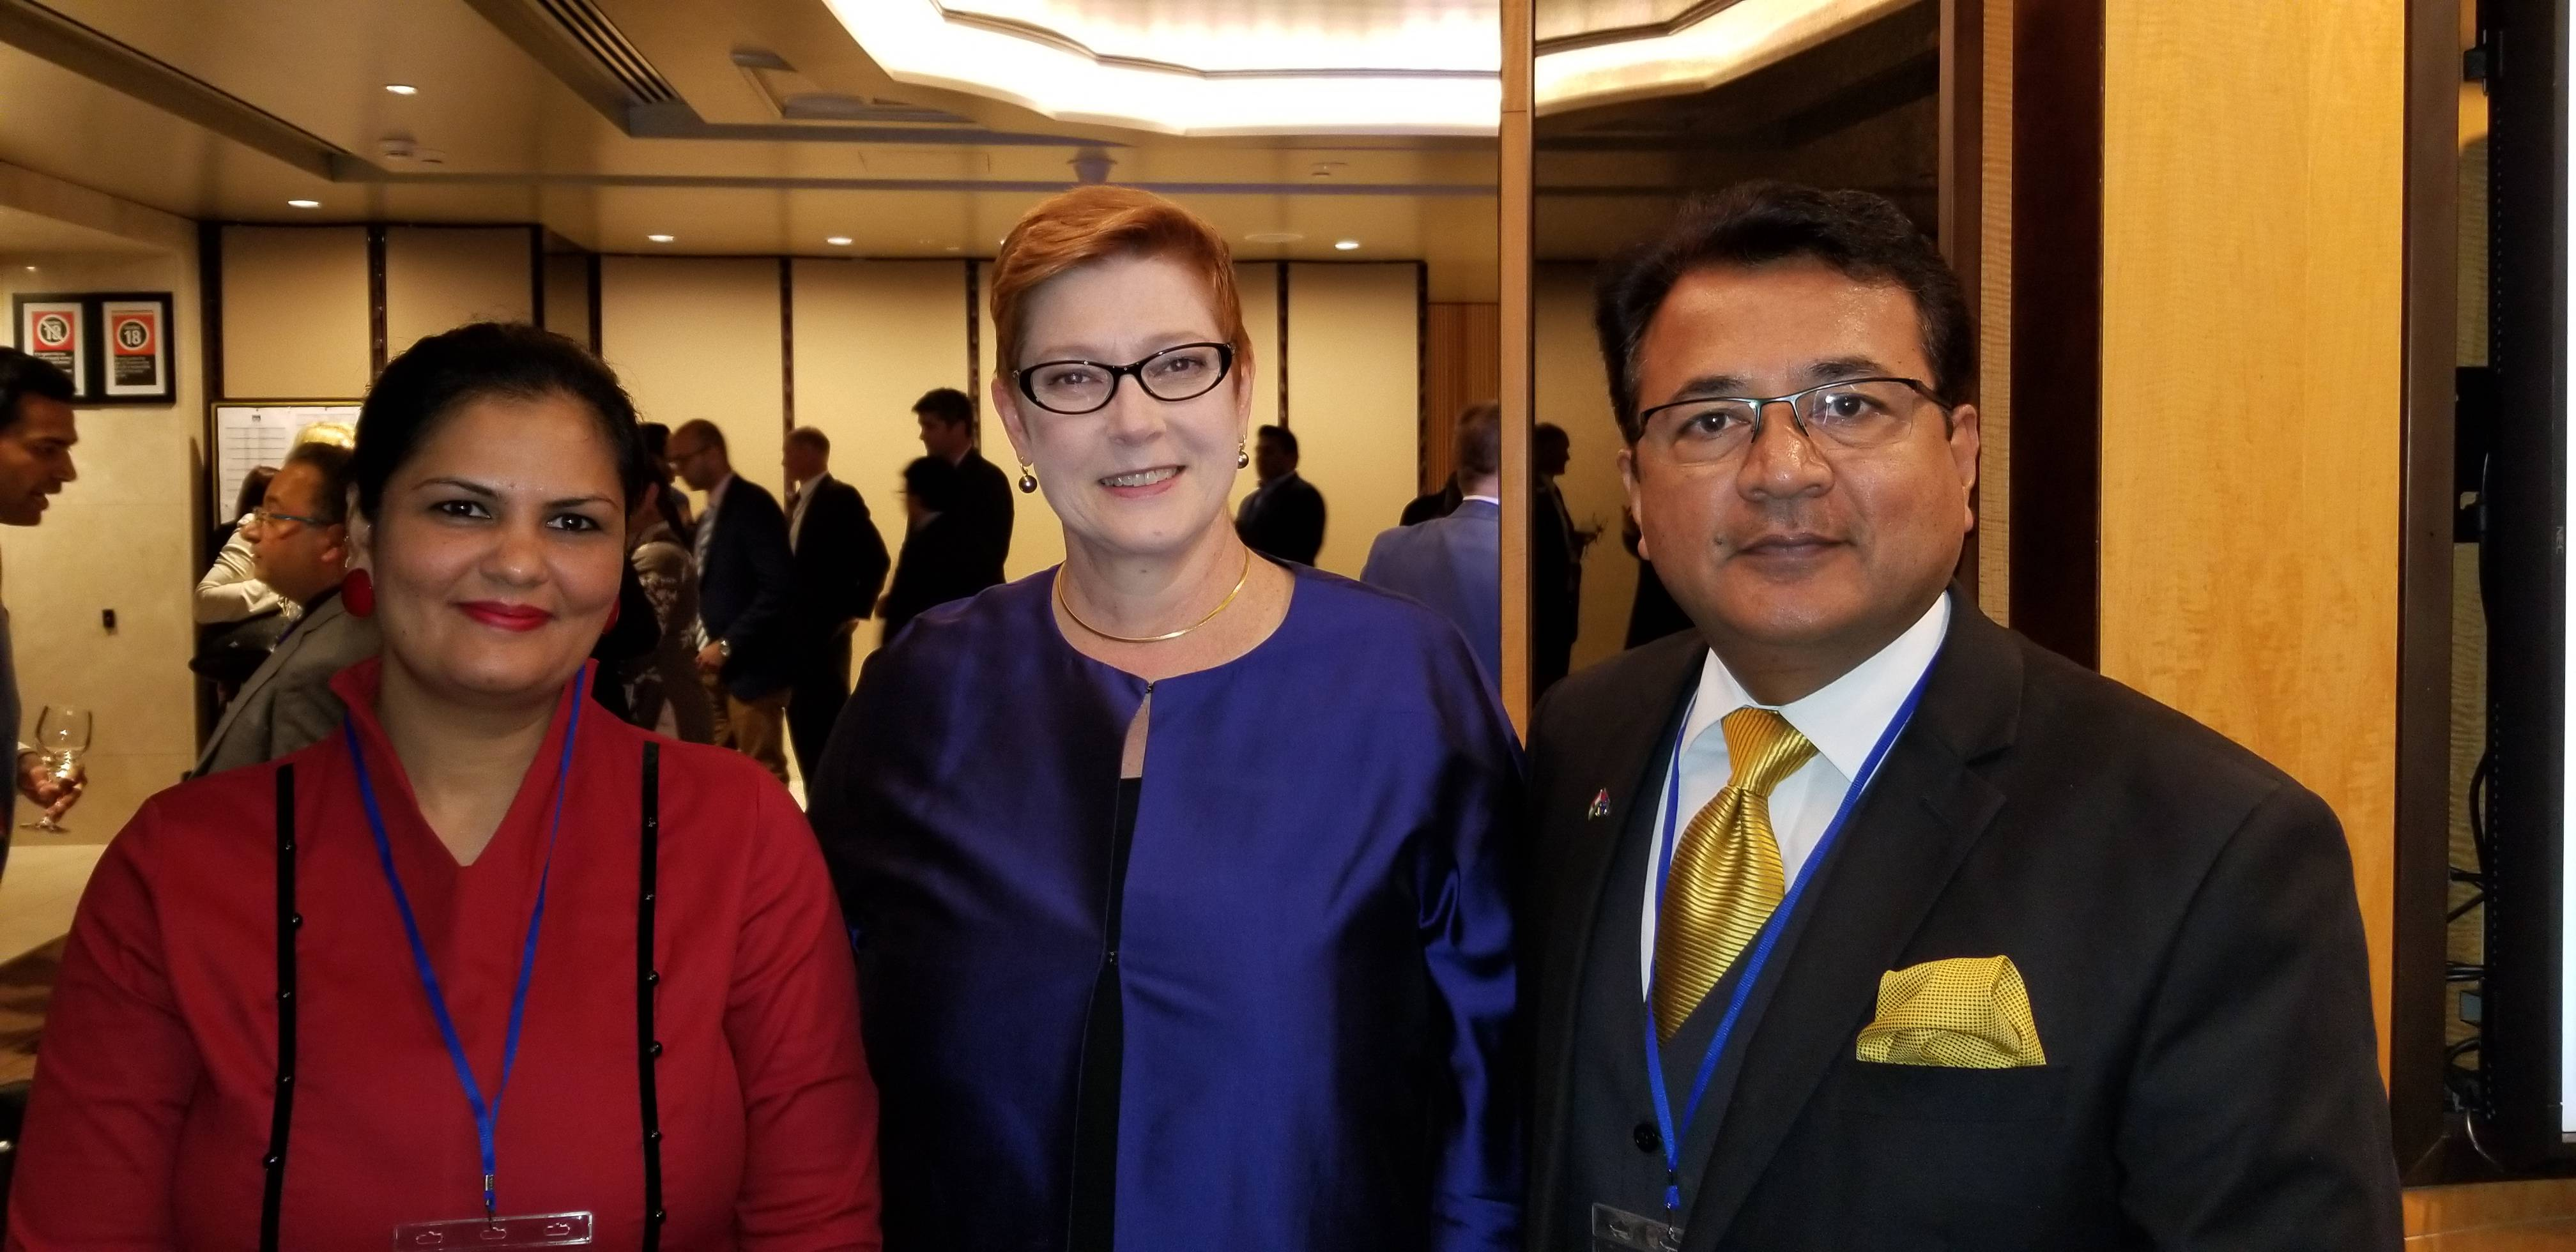 With the Hon Marise Payne Minister for Foreign Affairs and Minister for Women